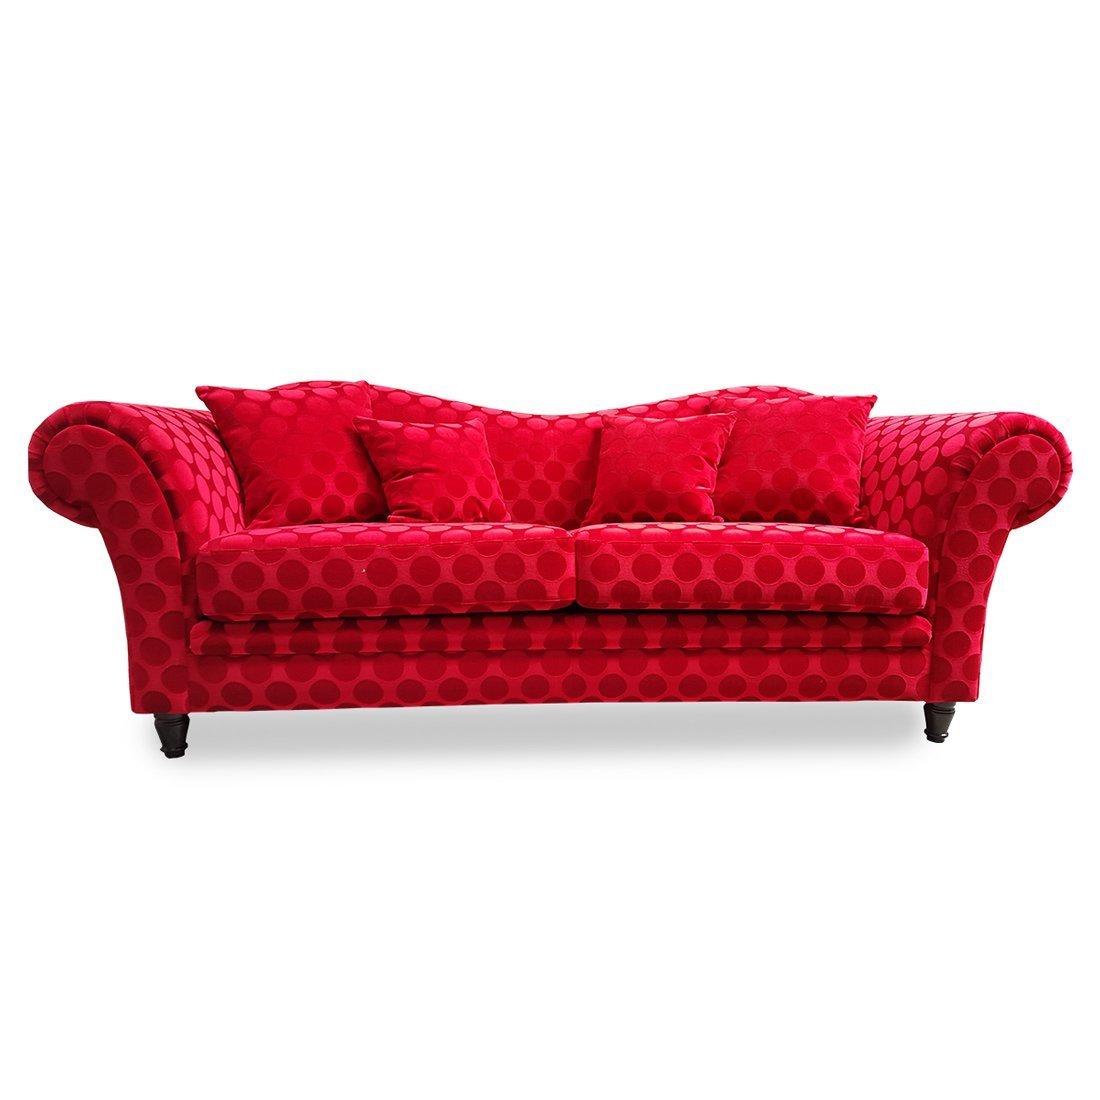 Canape convertible rouge design meubles et atmosphere for Canape convertible avec tapis original